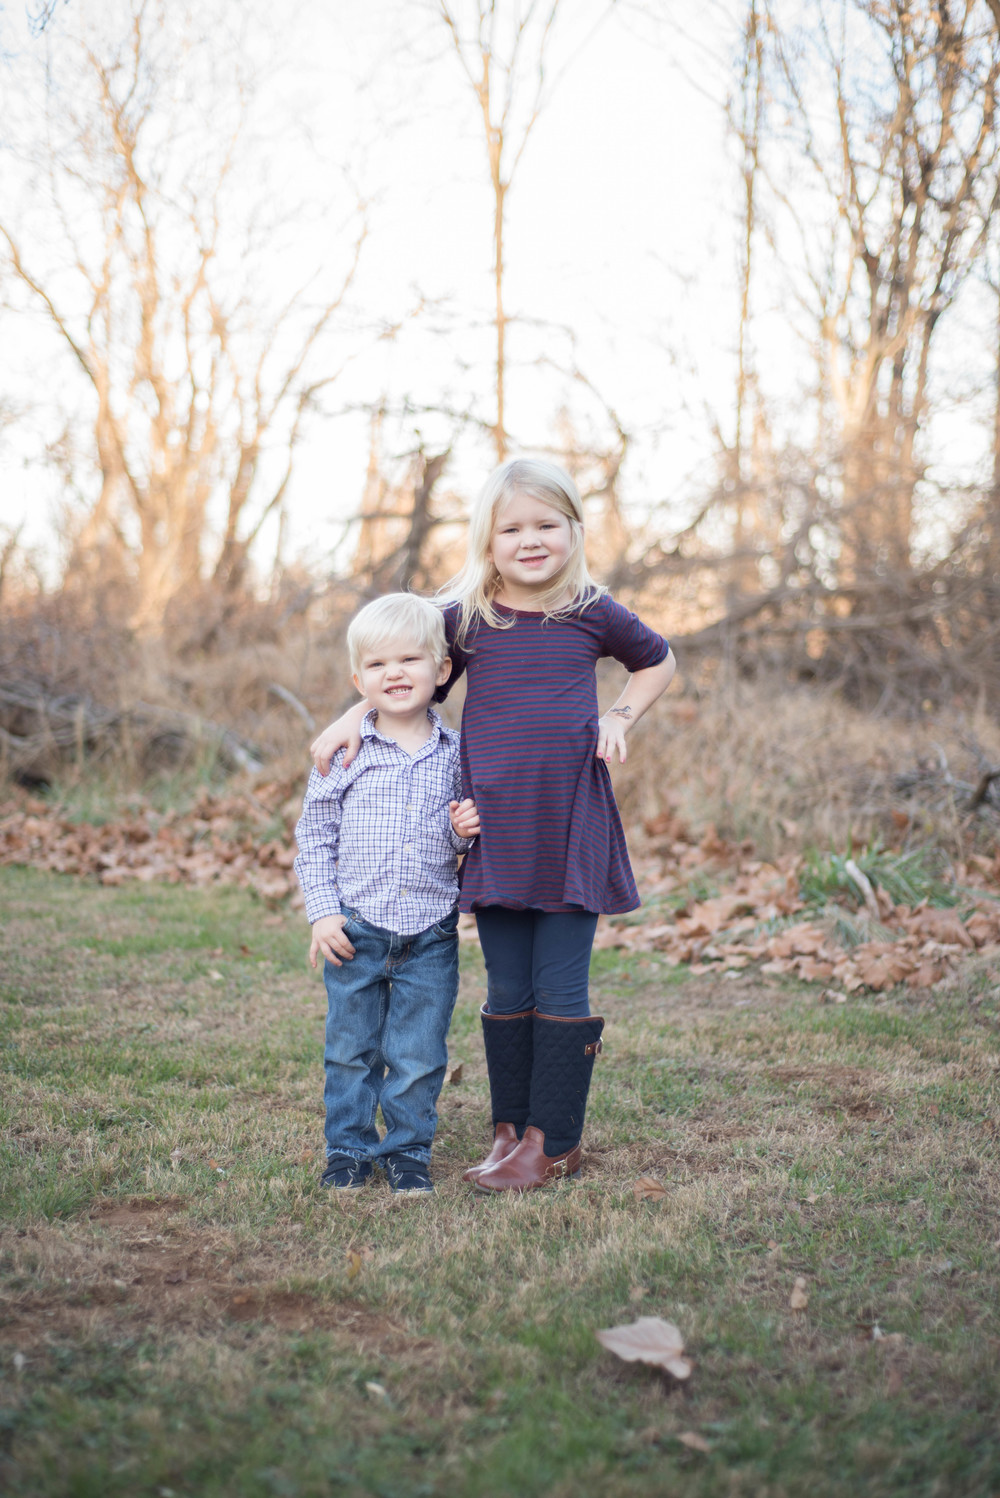 My future daughter-in-law! And her adorable brother, Rowan.